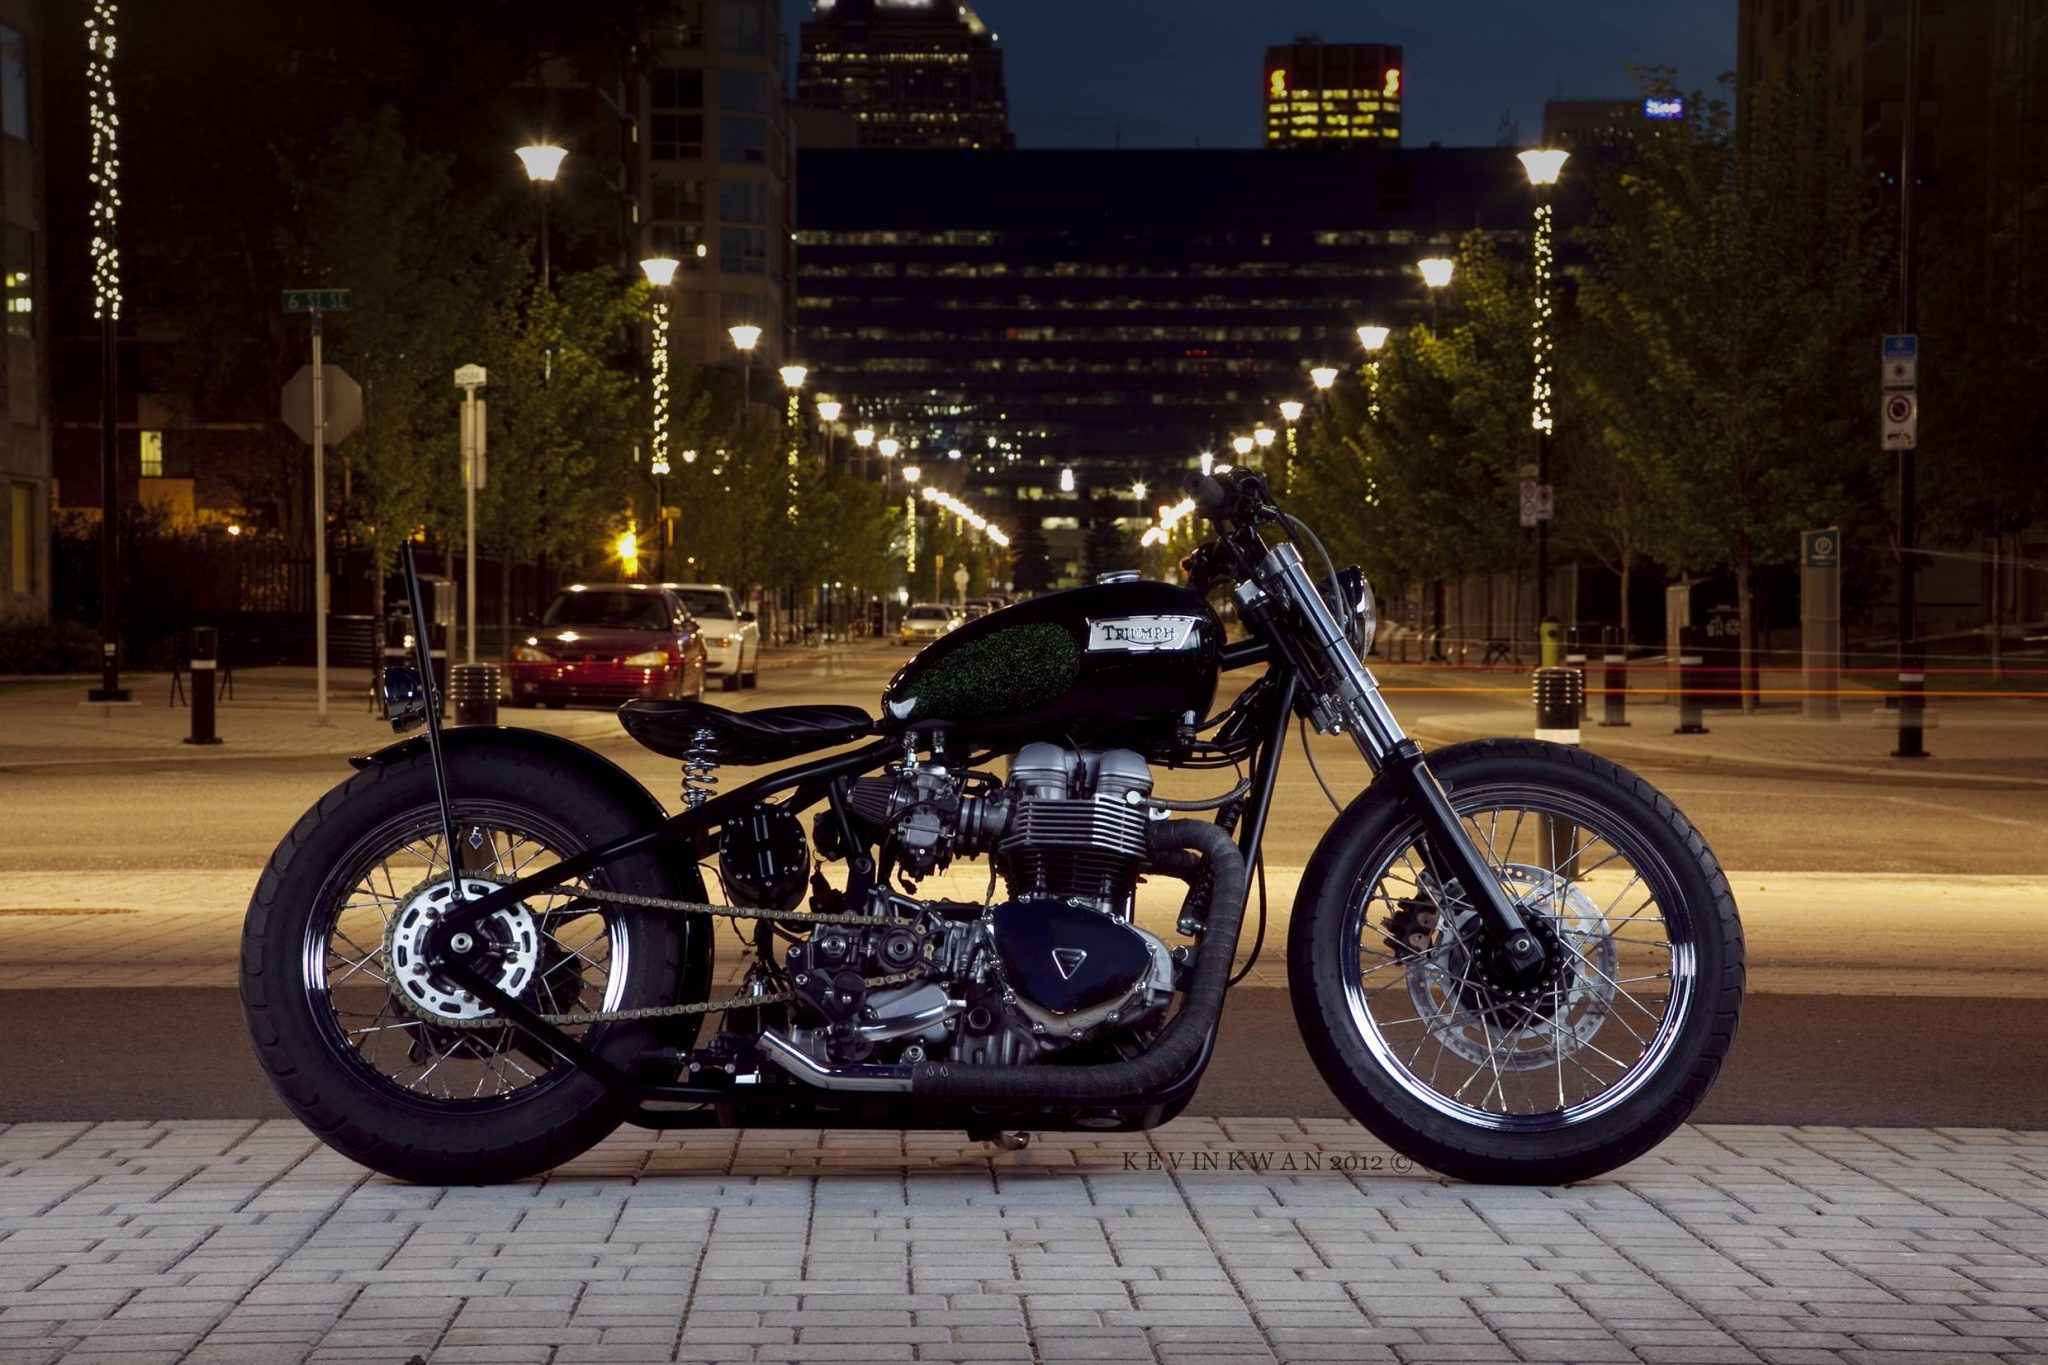 Calgary Motorcycle Show takes place in BMO Centre this January 5 2018